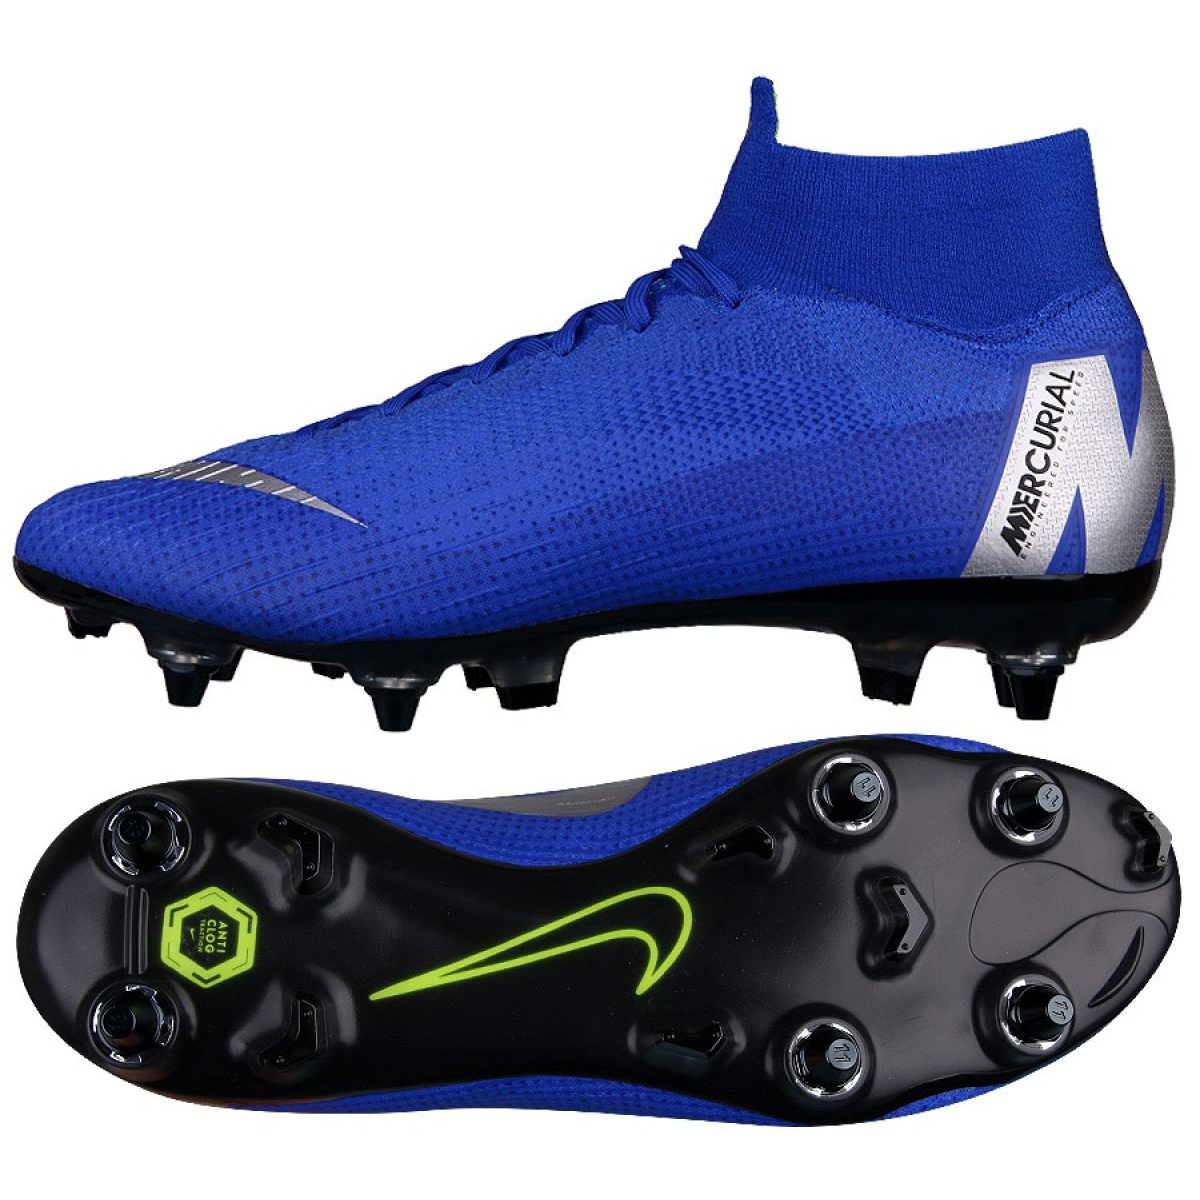 arriving fashion best deals on Chaussures de football Nike Mercurial Superfly 6 Elite SG-Pro M AH7366-400